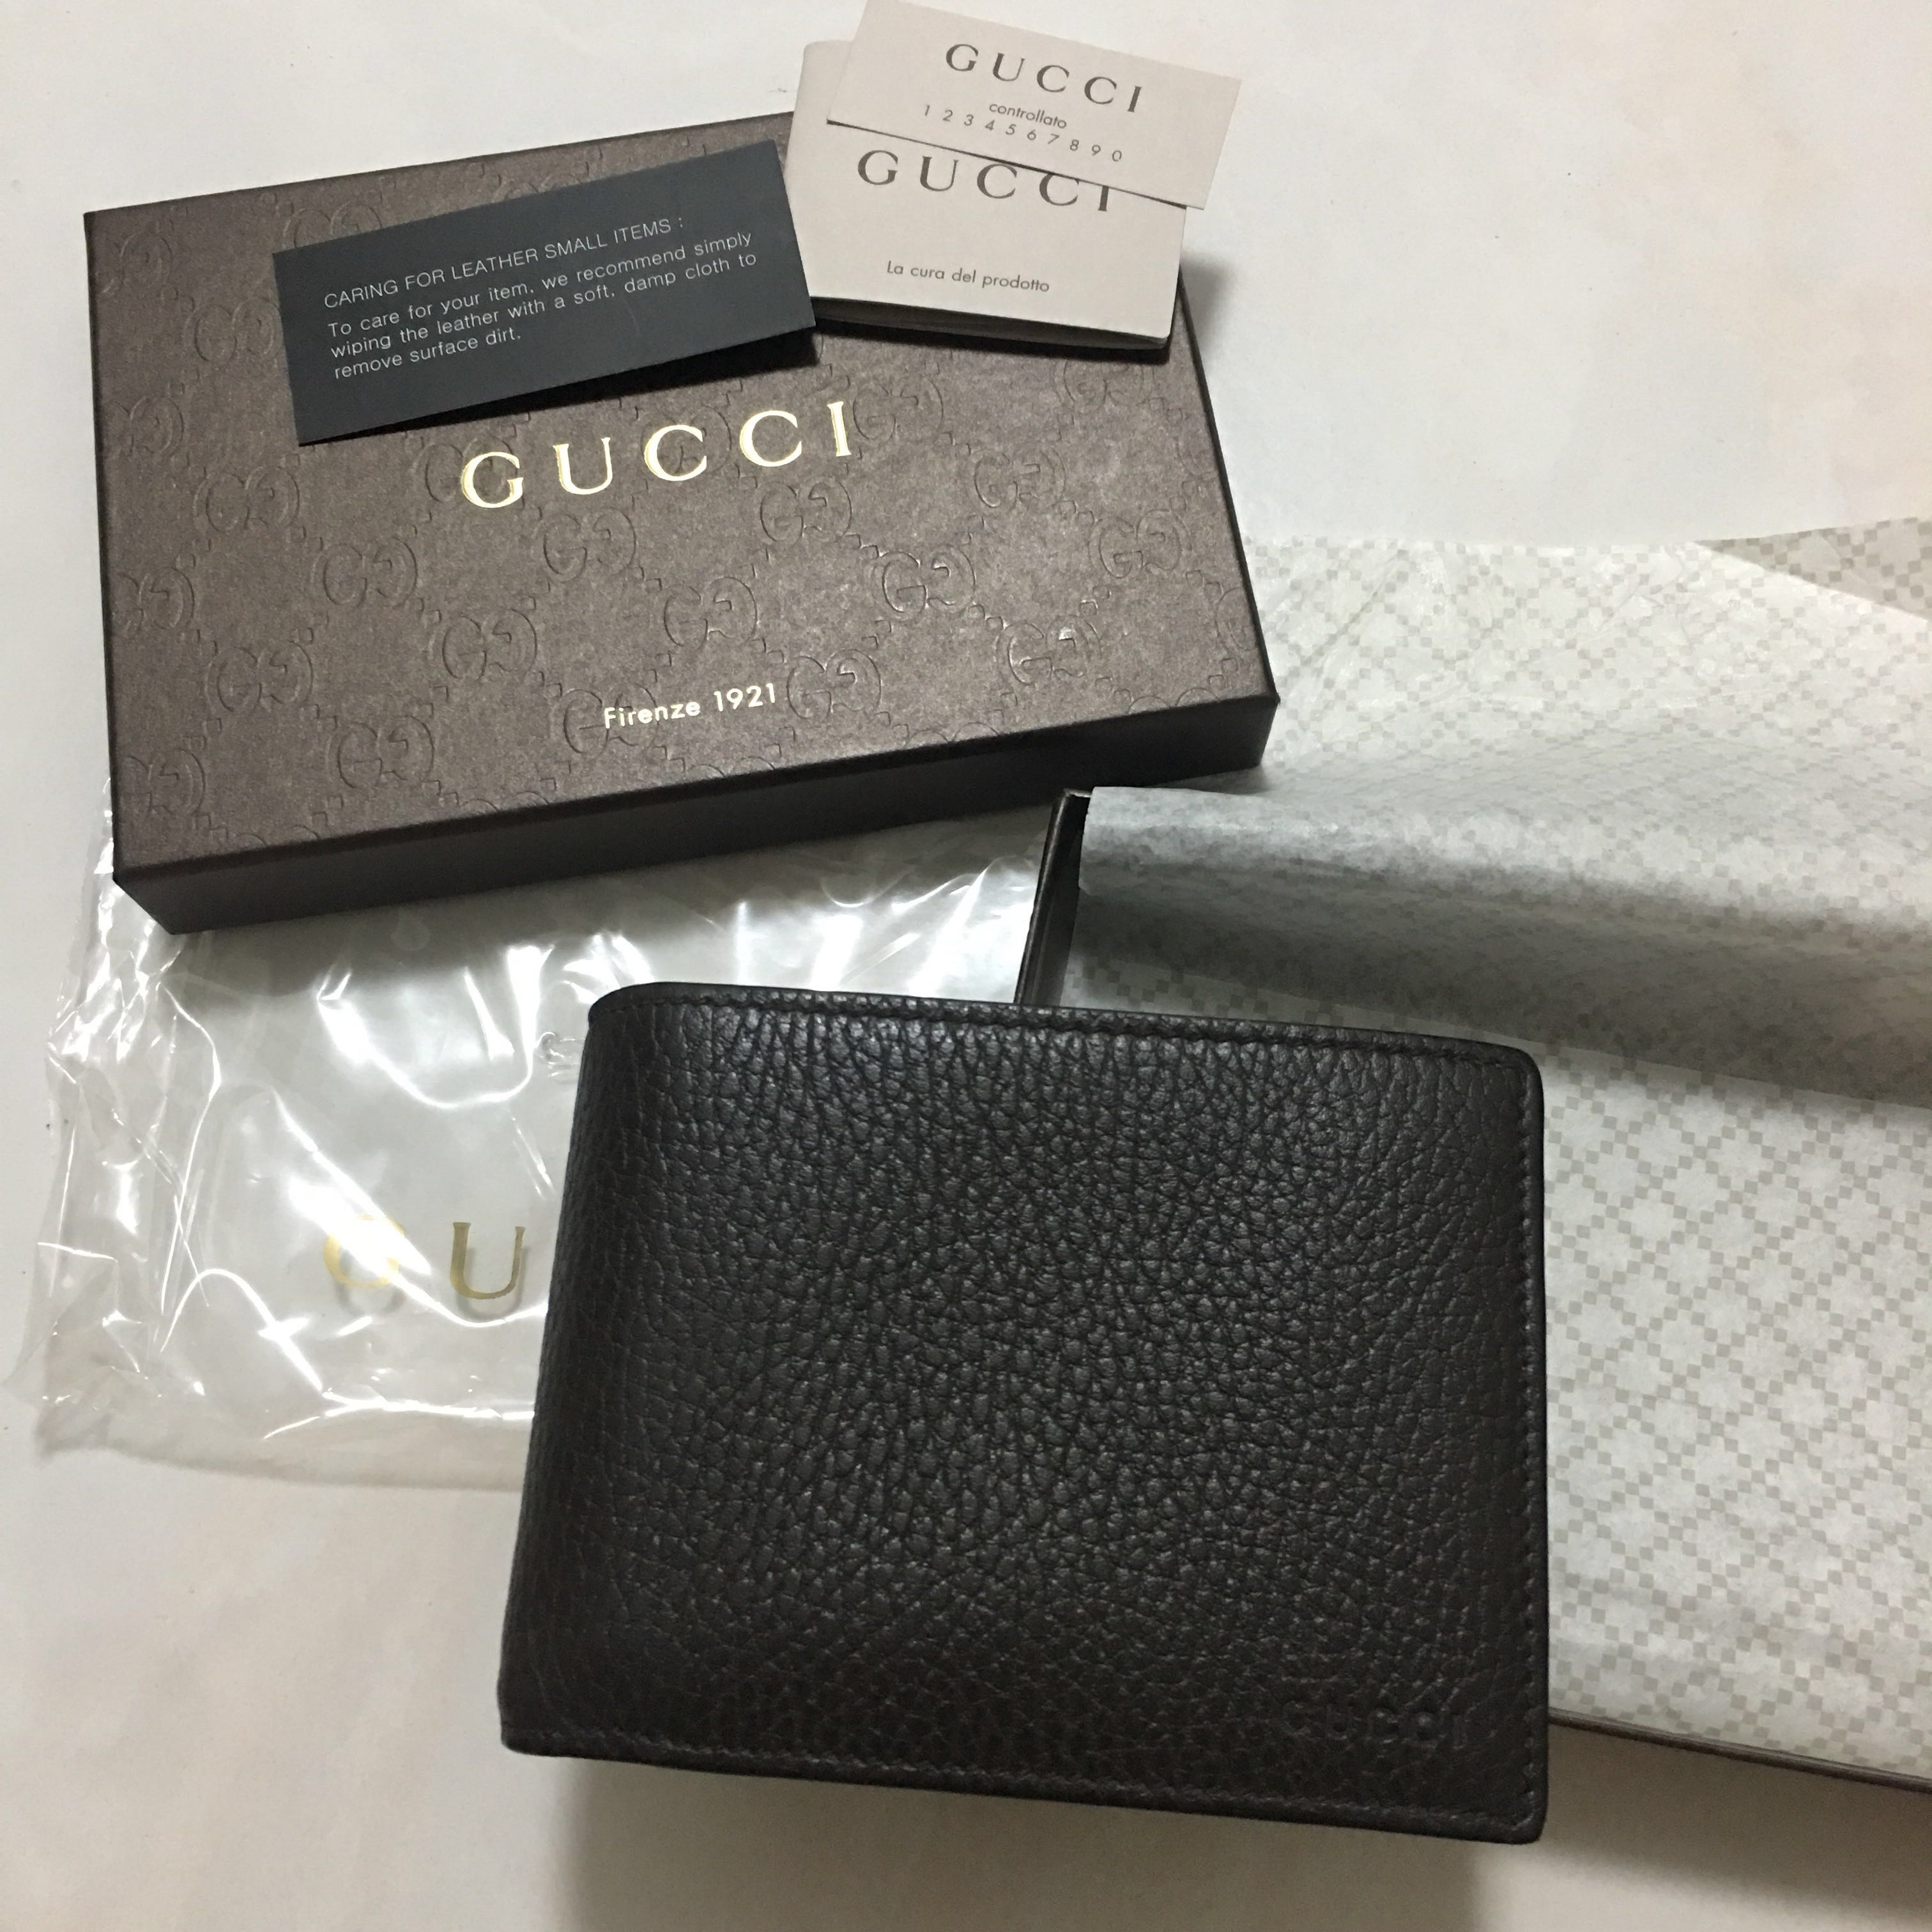 f45f43c557a5 Gucci Men's Chocolate Brown Leather Embossed Logo Wallet, Men's Fashion,  Bags & Wallets, Wallets on Carousell